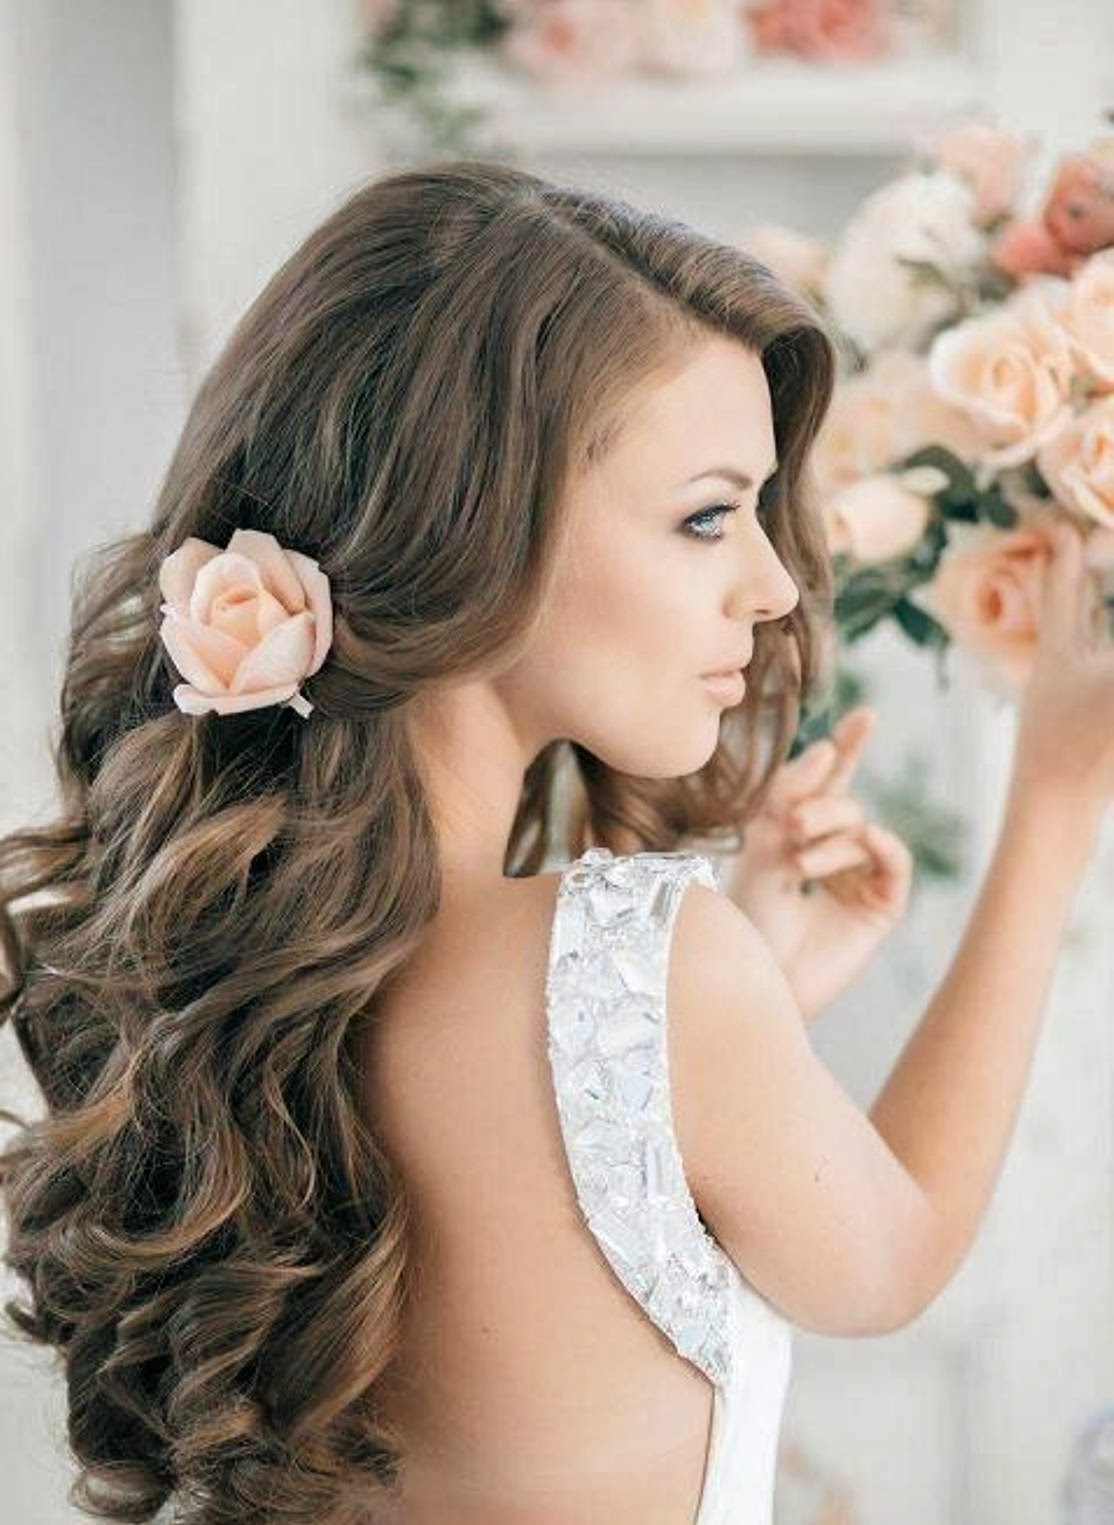 Hair Style All : ... for long hair wedding : Hair Fashion Style COLOR STYLES CUTS